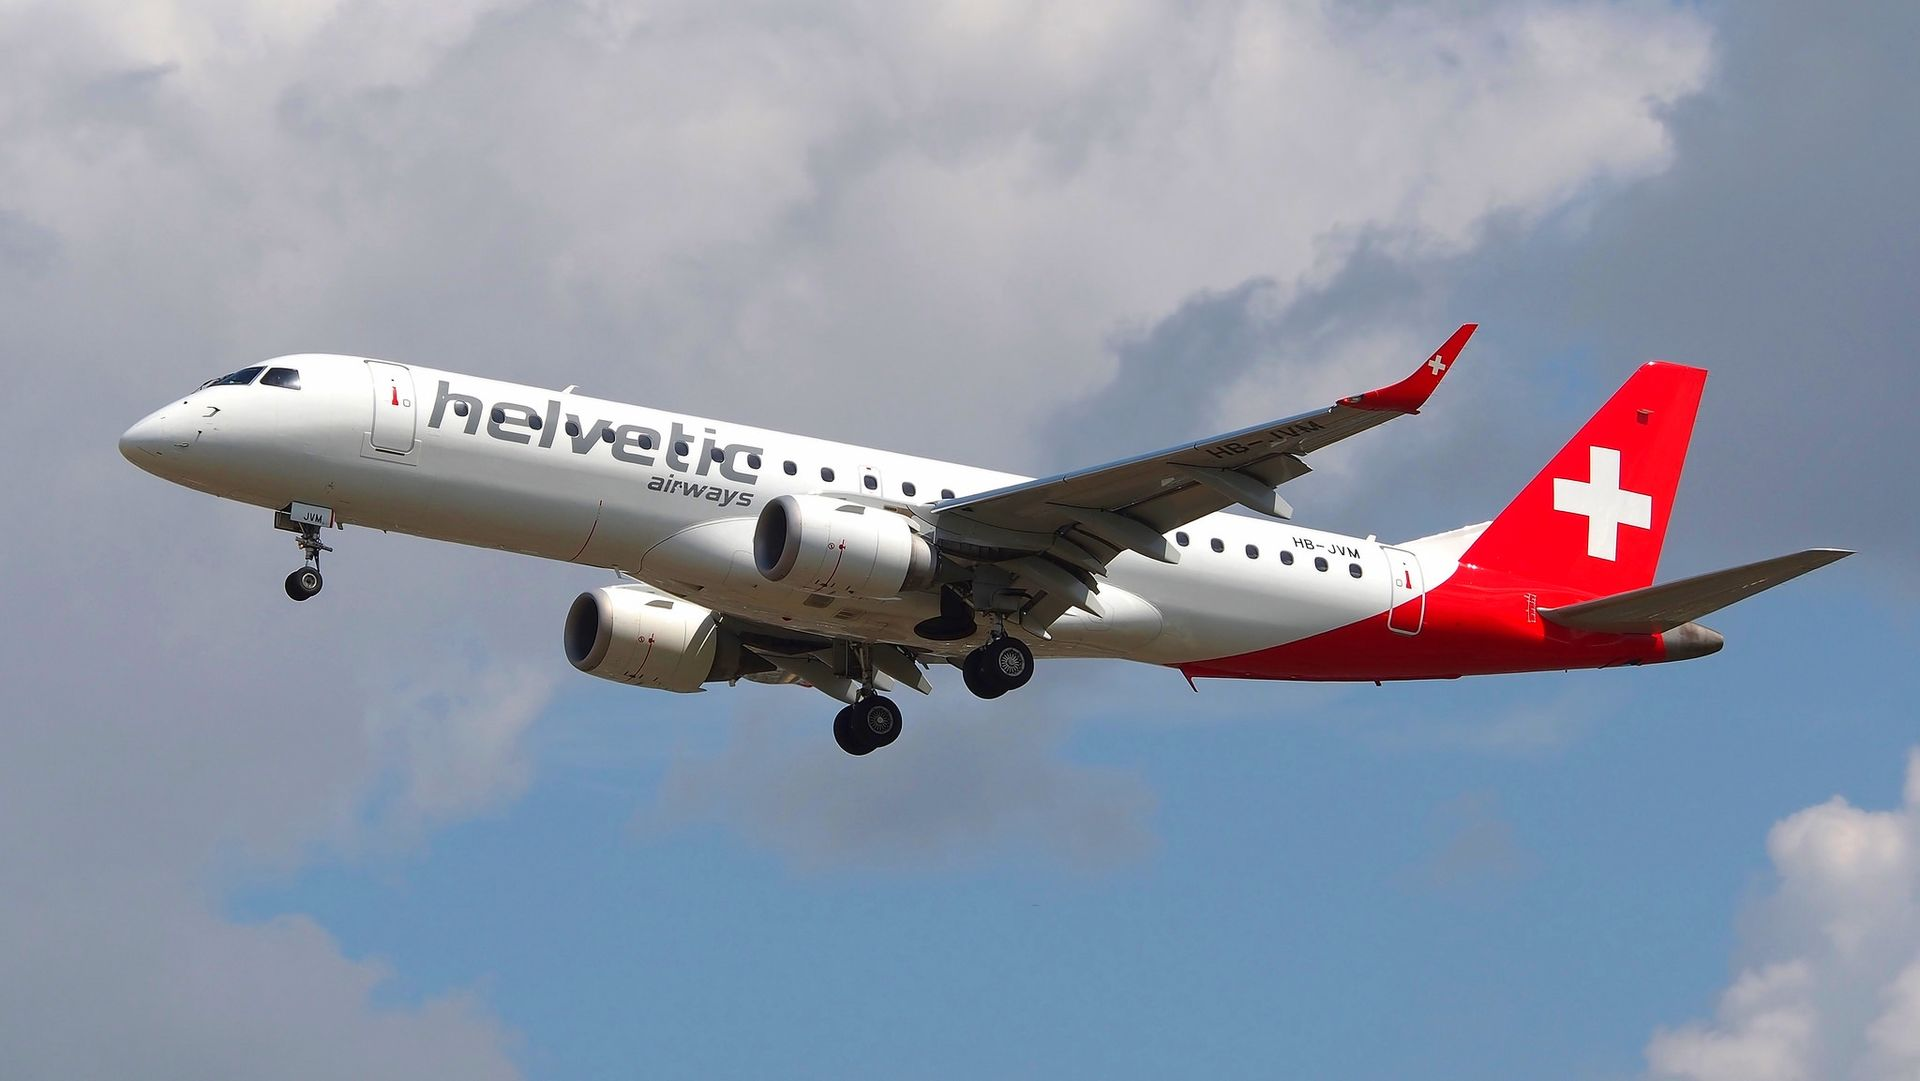 Un Embraer 190 de la compagnie aérienne Helvetic airways.